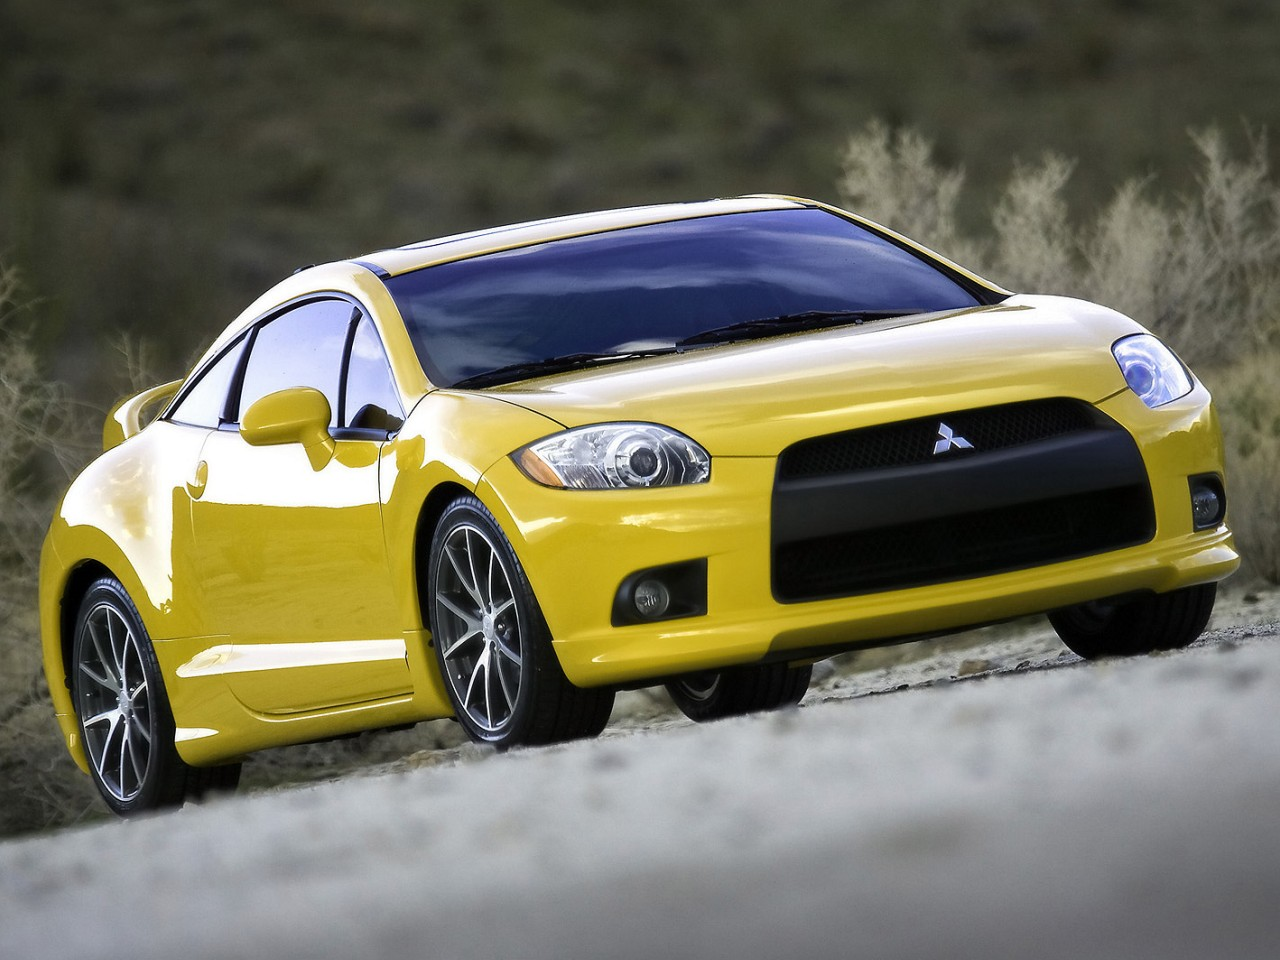 2009 Mitsubishi Eclipse Gt Wallpapers Pictures